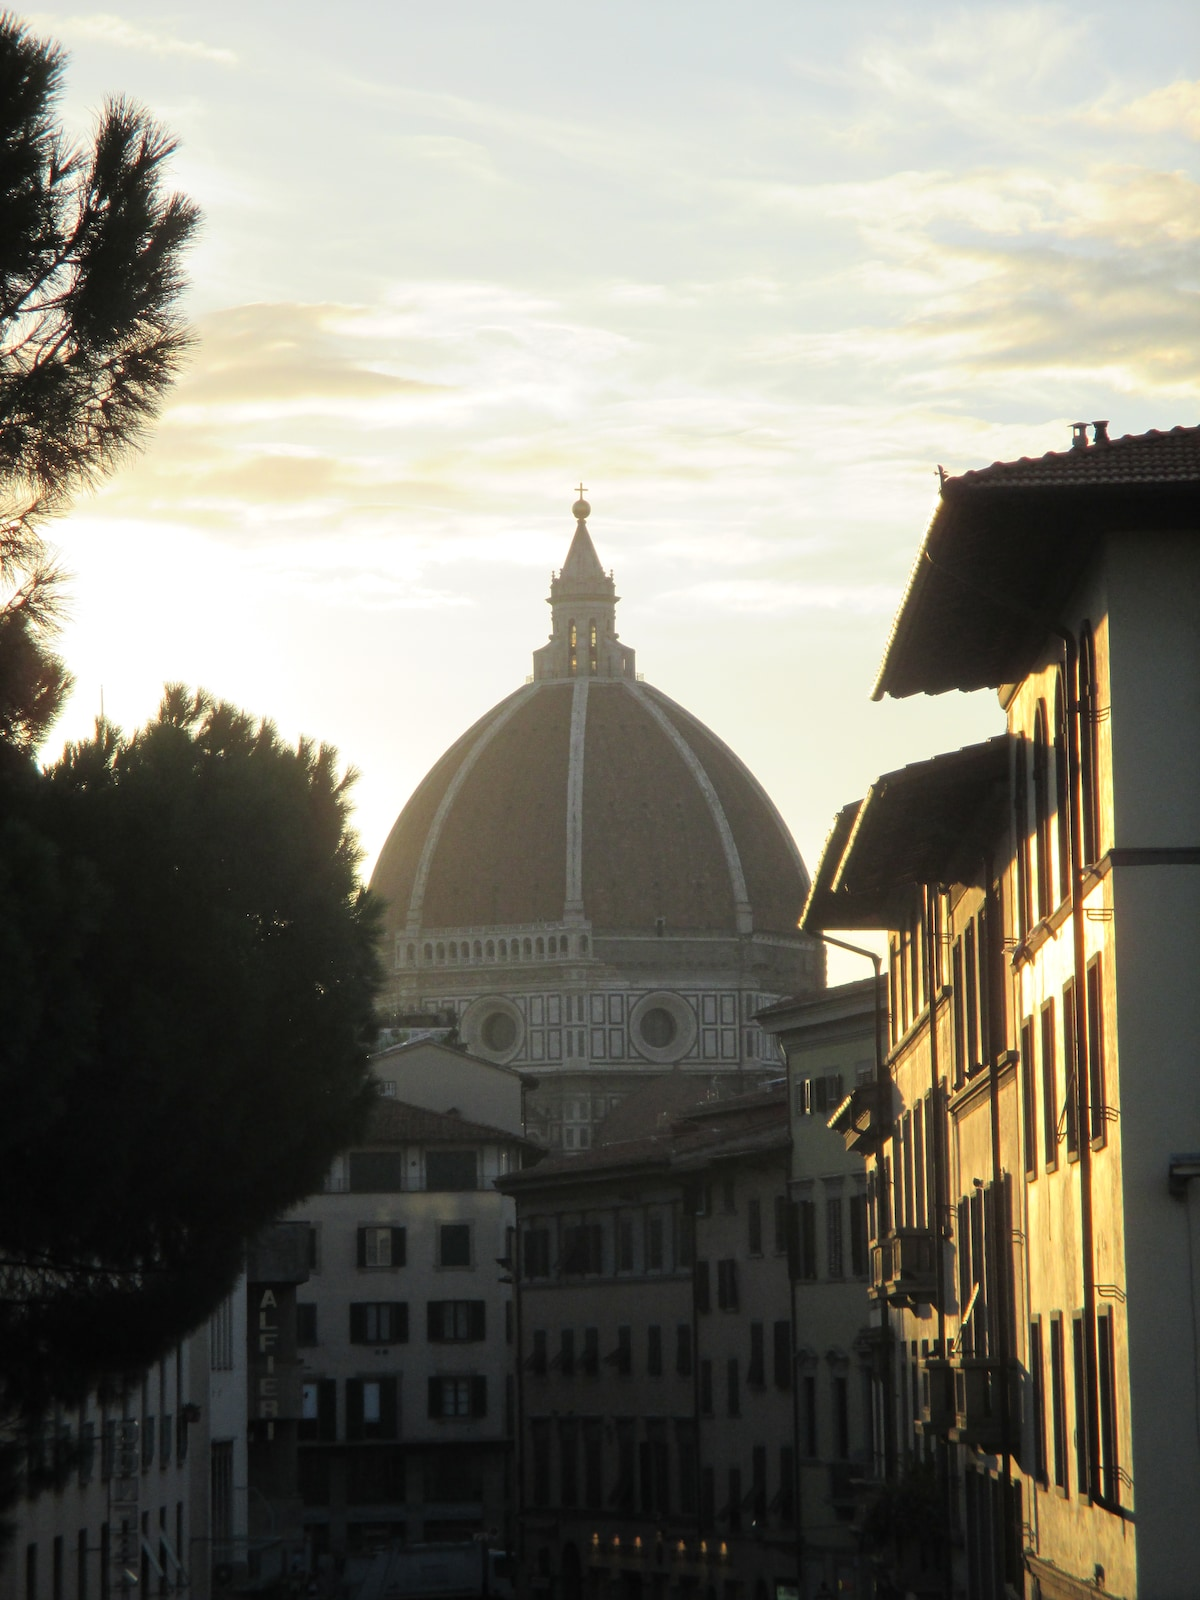 REAL FLORENCE. View of the Dome